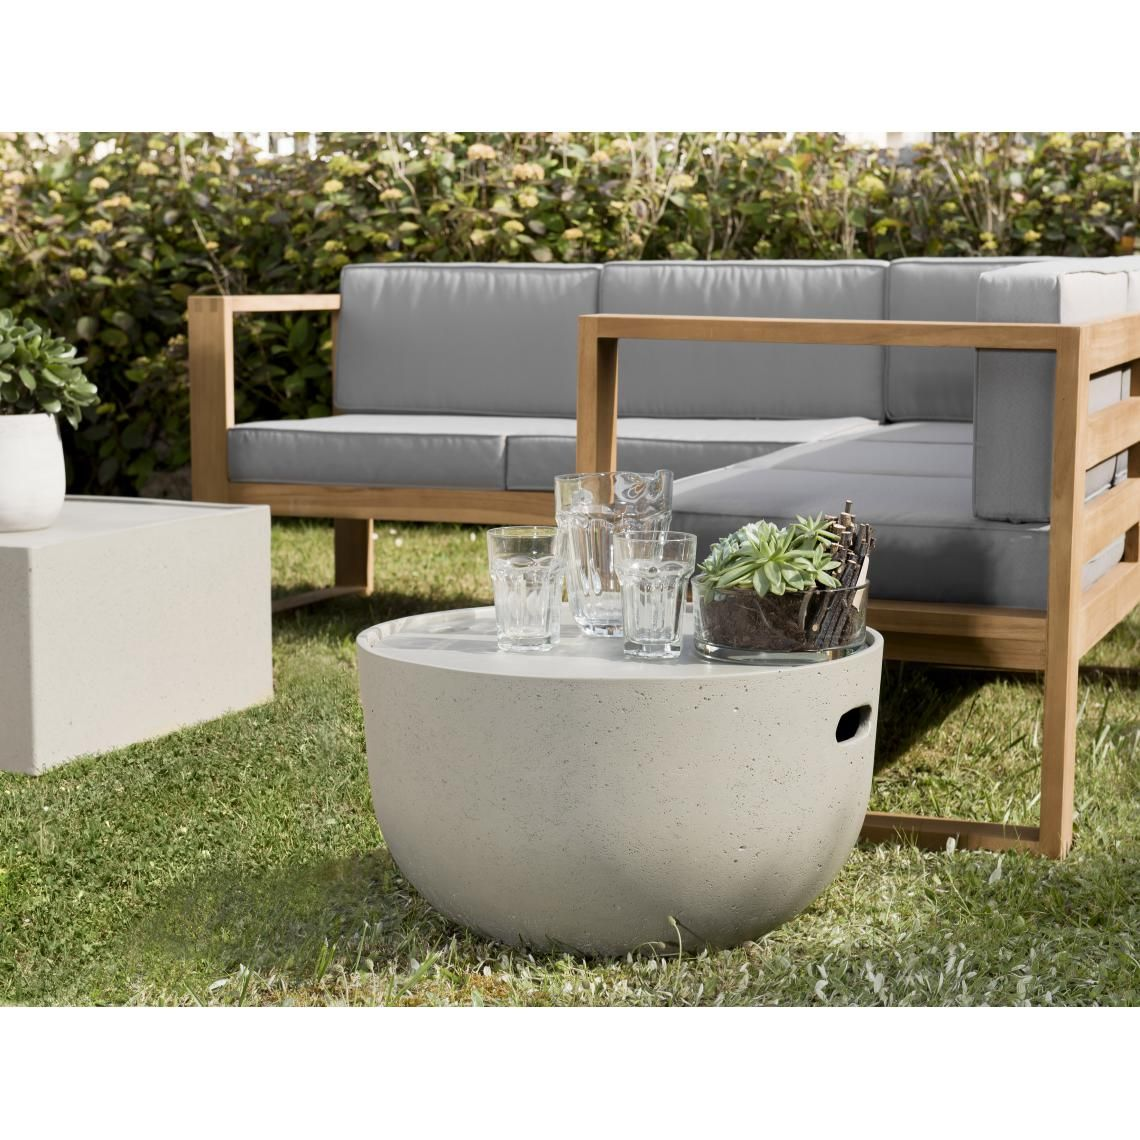 Table Coffre Ronde En Beton 58x58 Cm En 2020 Table Basse En Pierre Table Coffre Table Basse Jardin